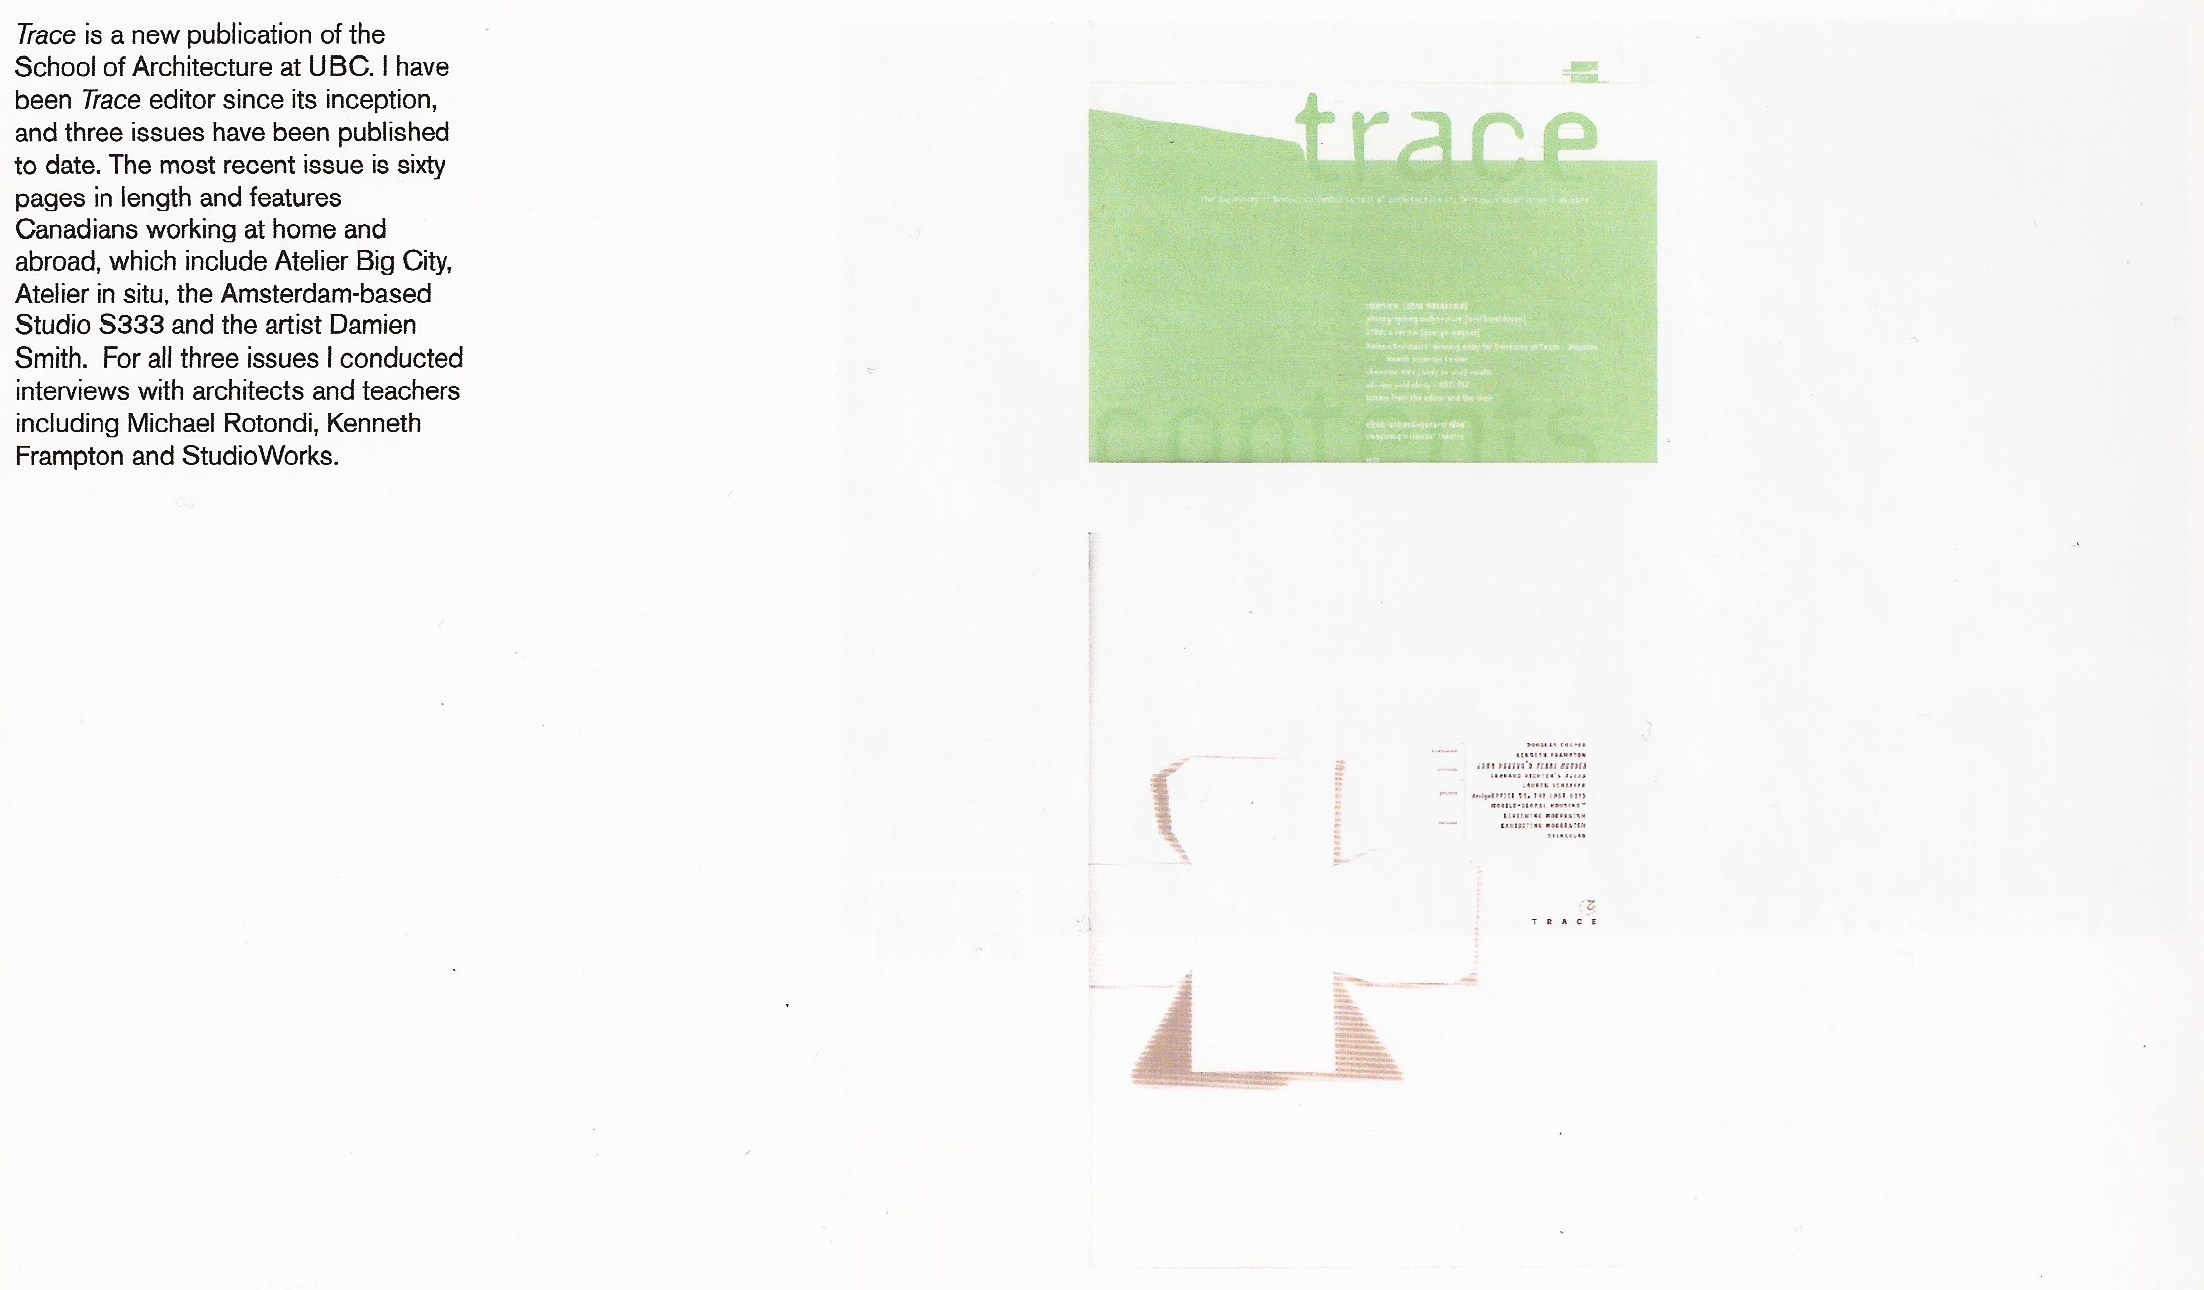 Trace, A Publication of the UBC School of Architecture